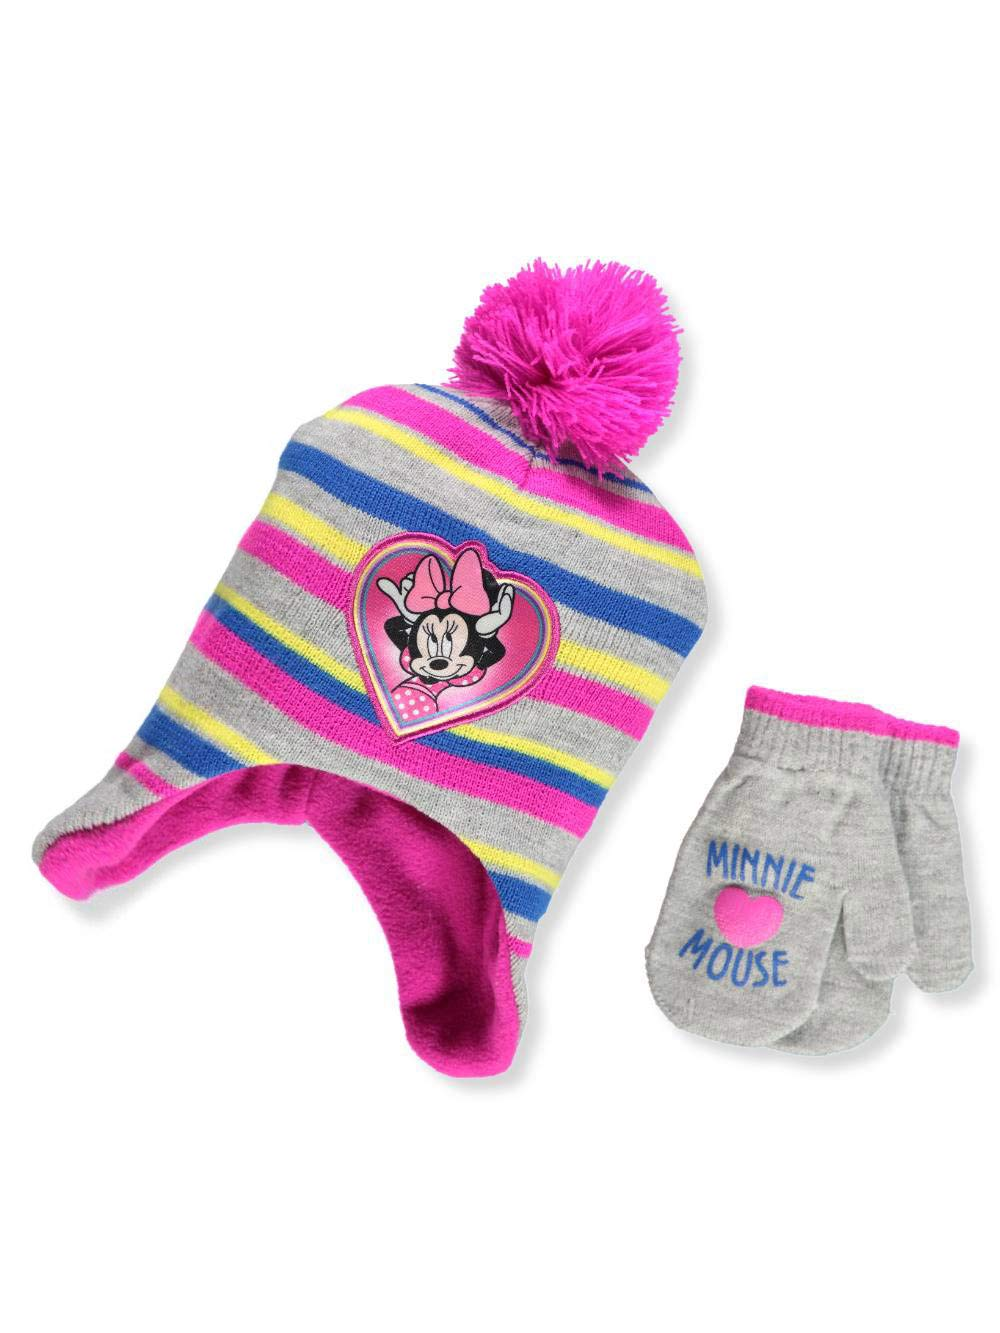 Disney Minnie Mouse Big Girls' Beanie & Mittens Set - gray/purple, one size